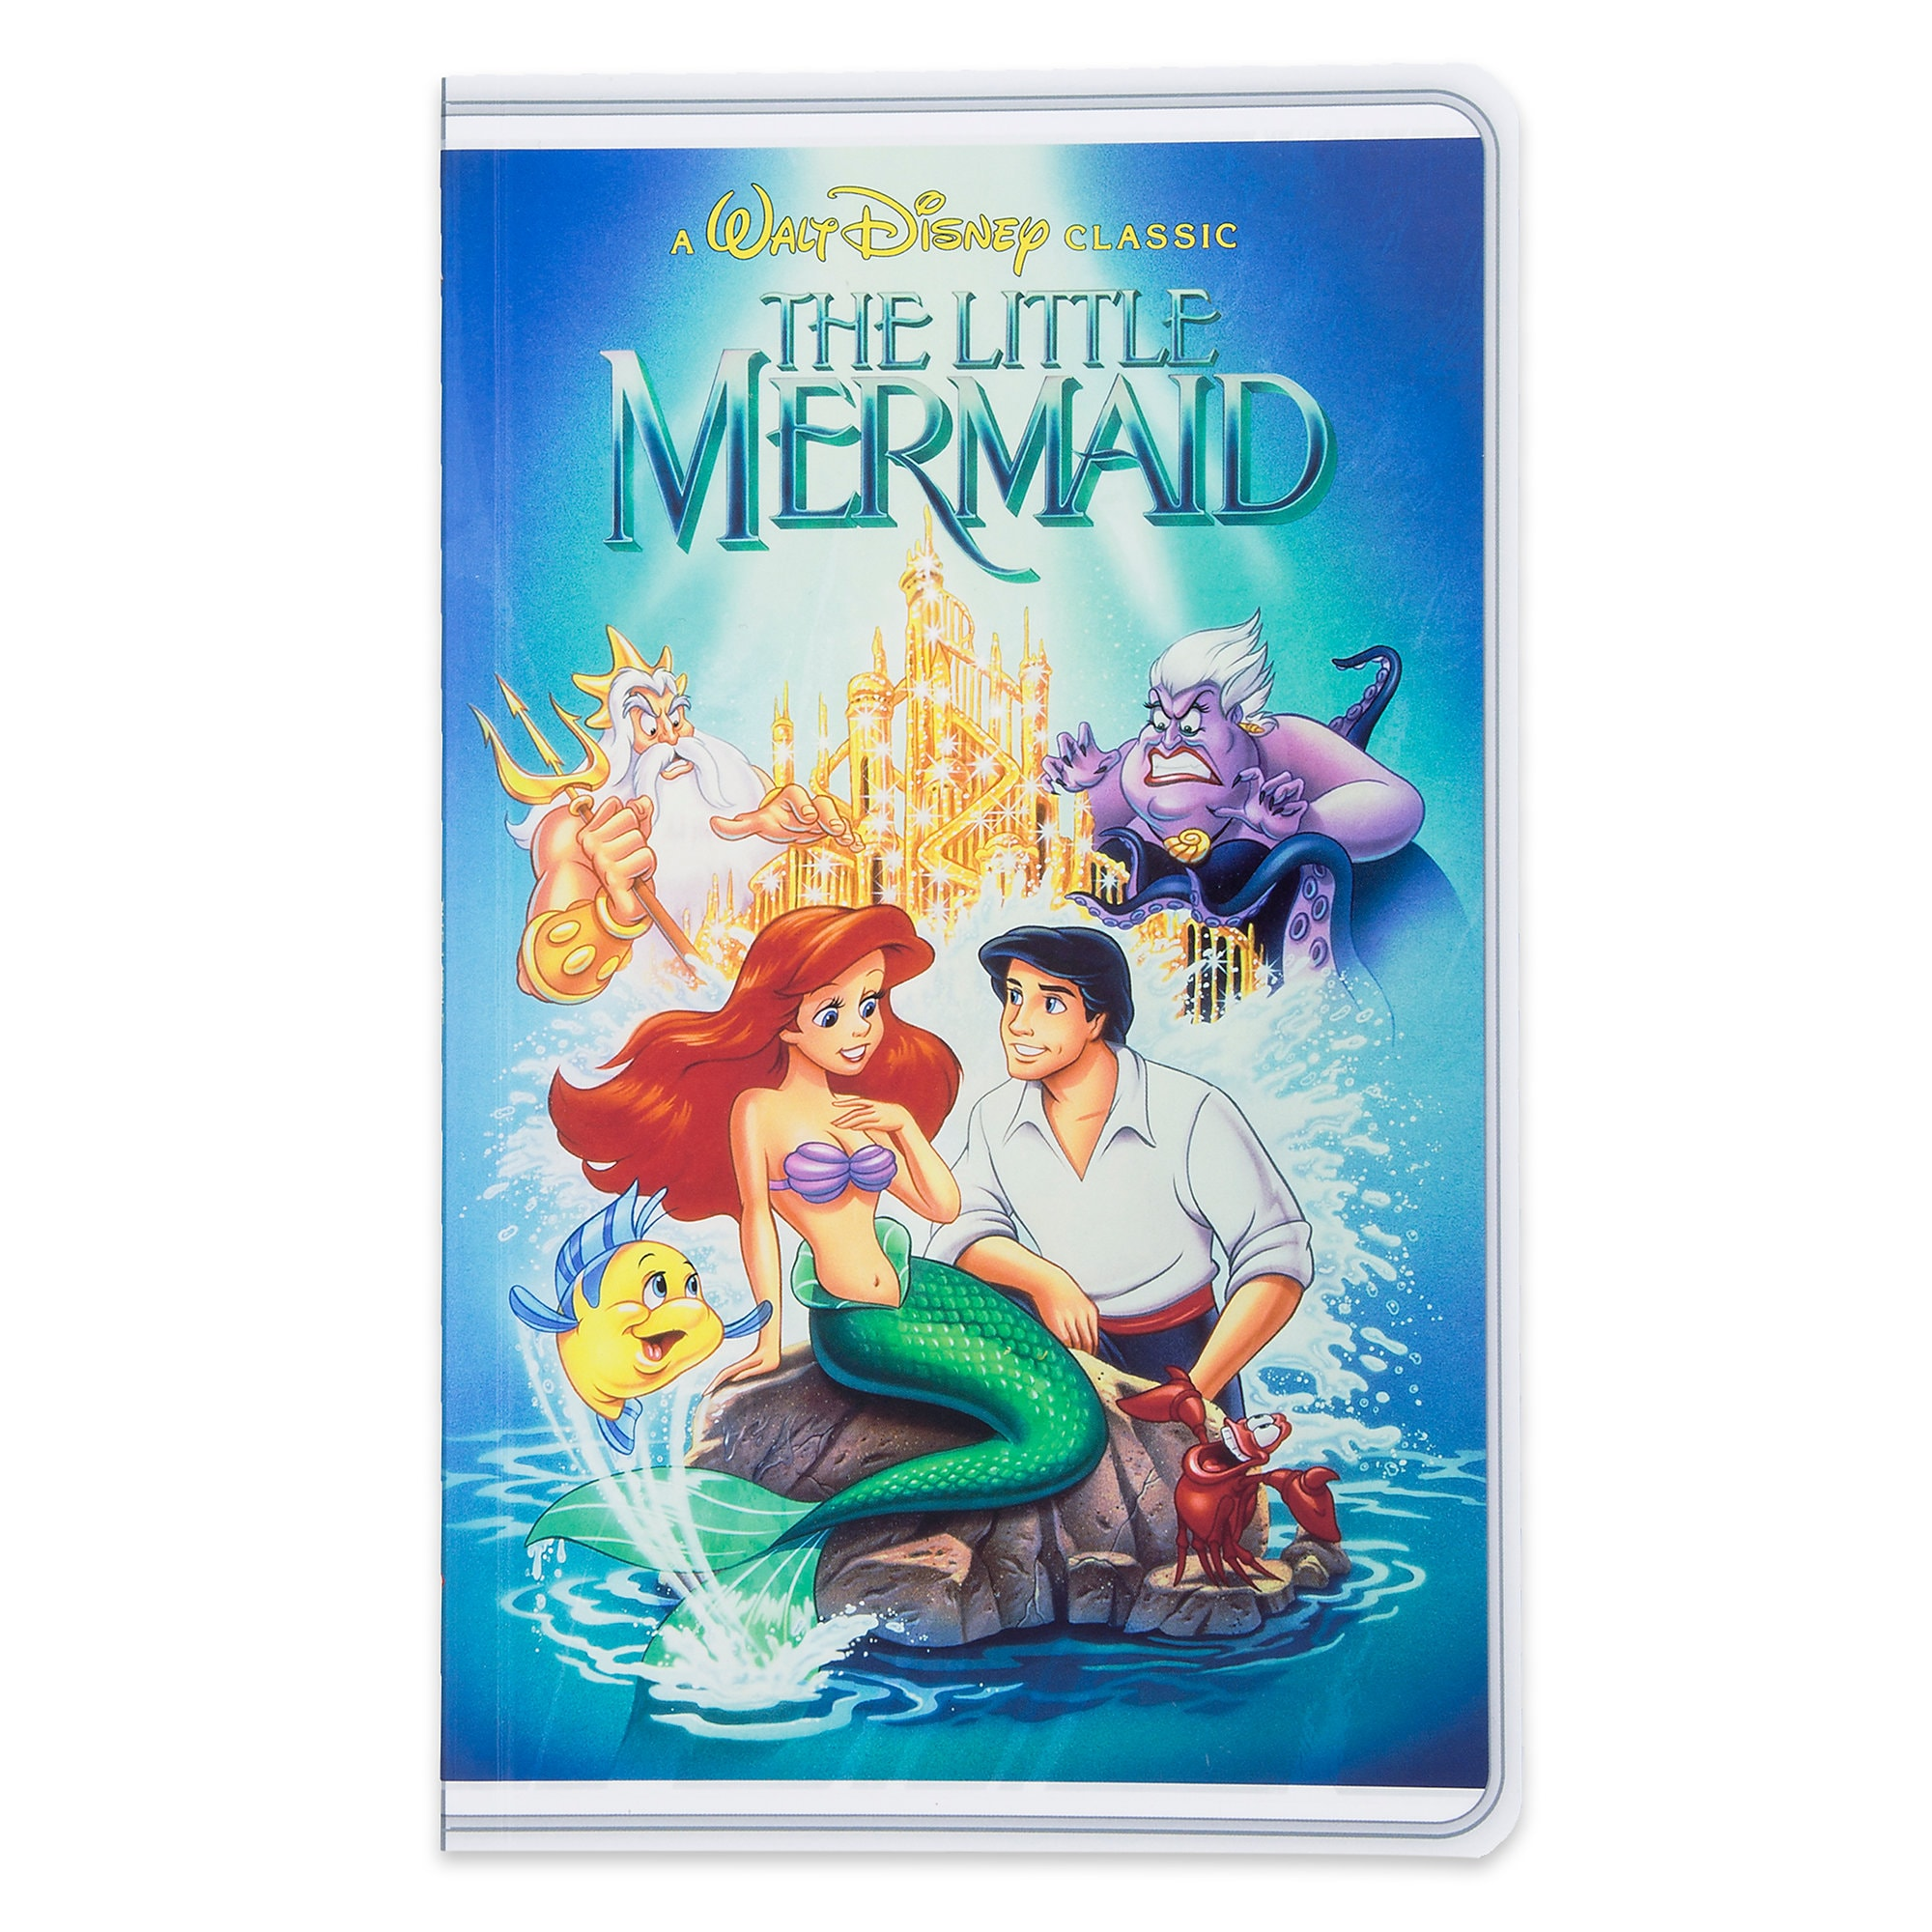 The Little Mermaid ''VHS Case'' Journal